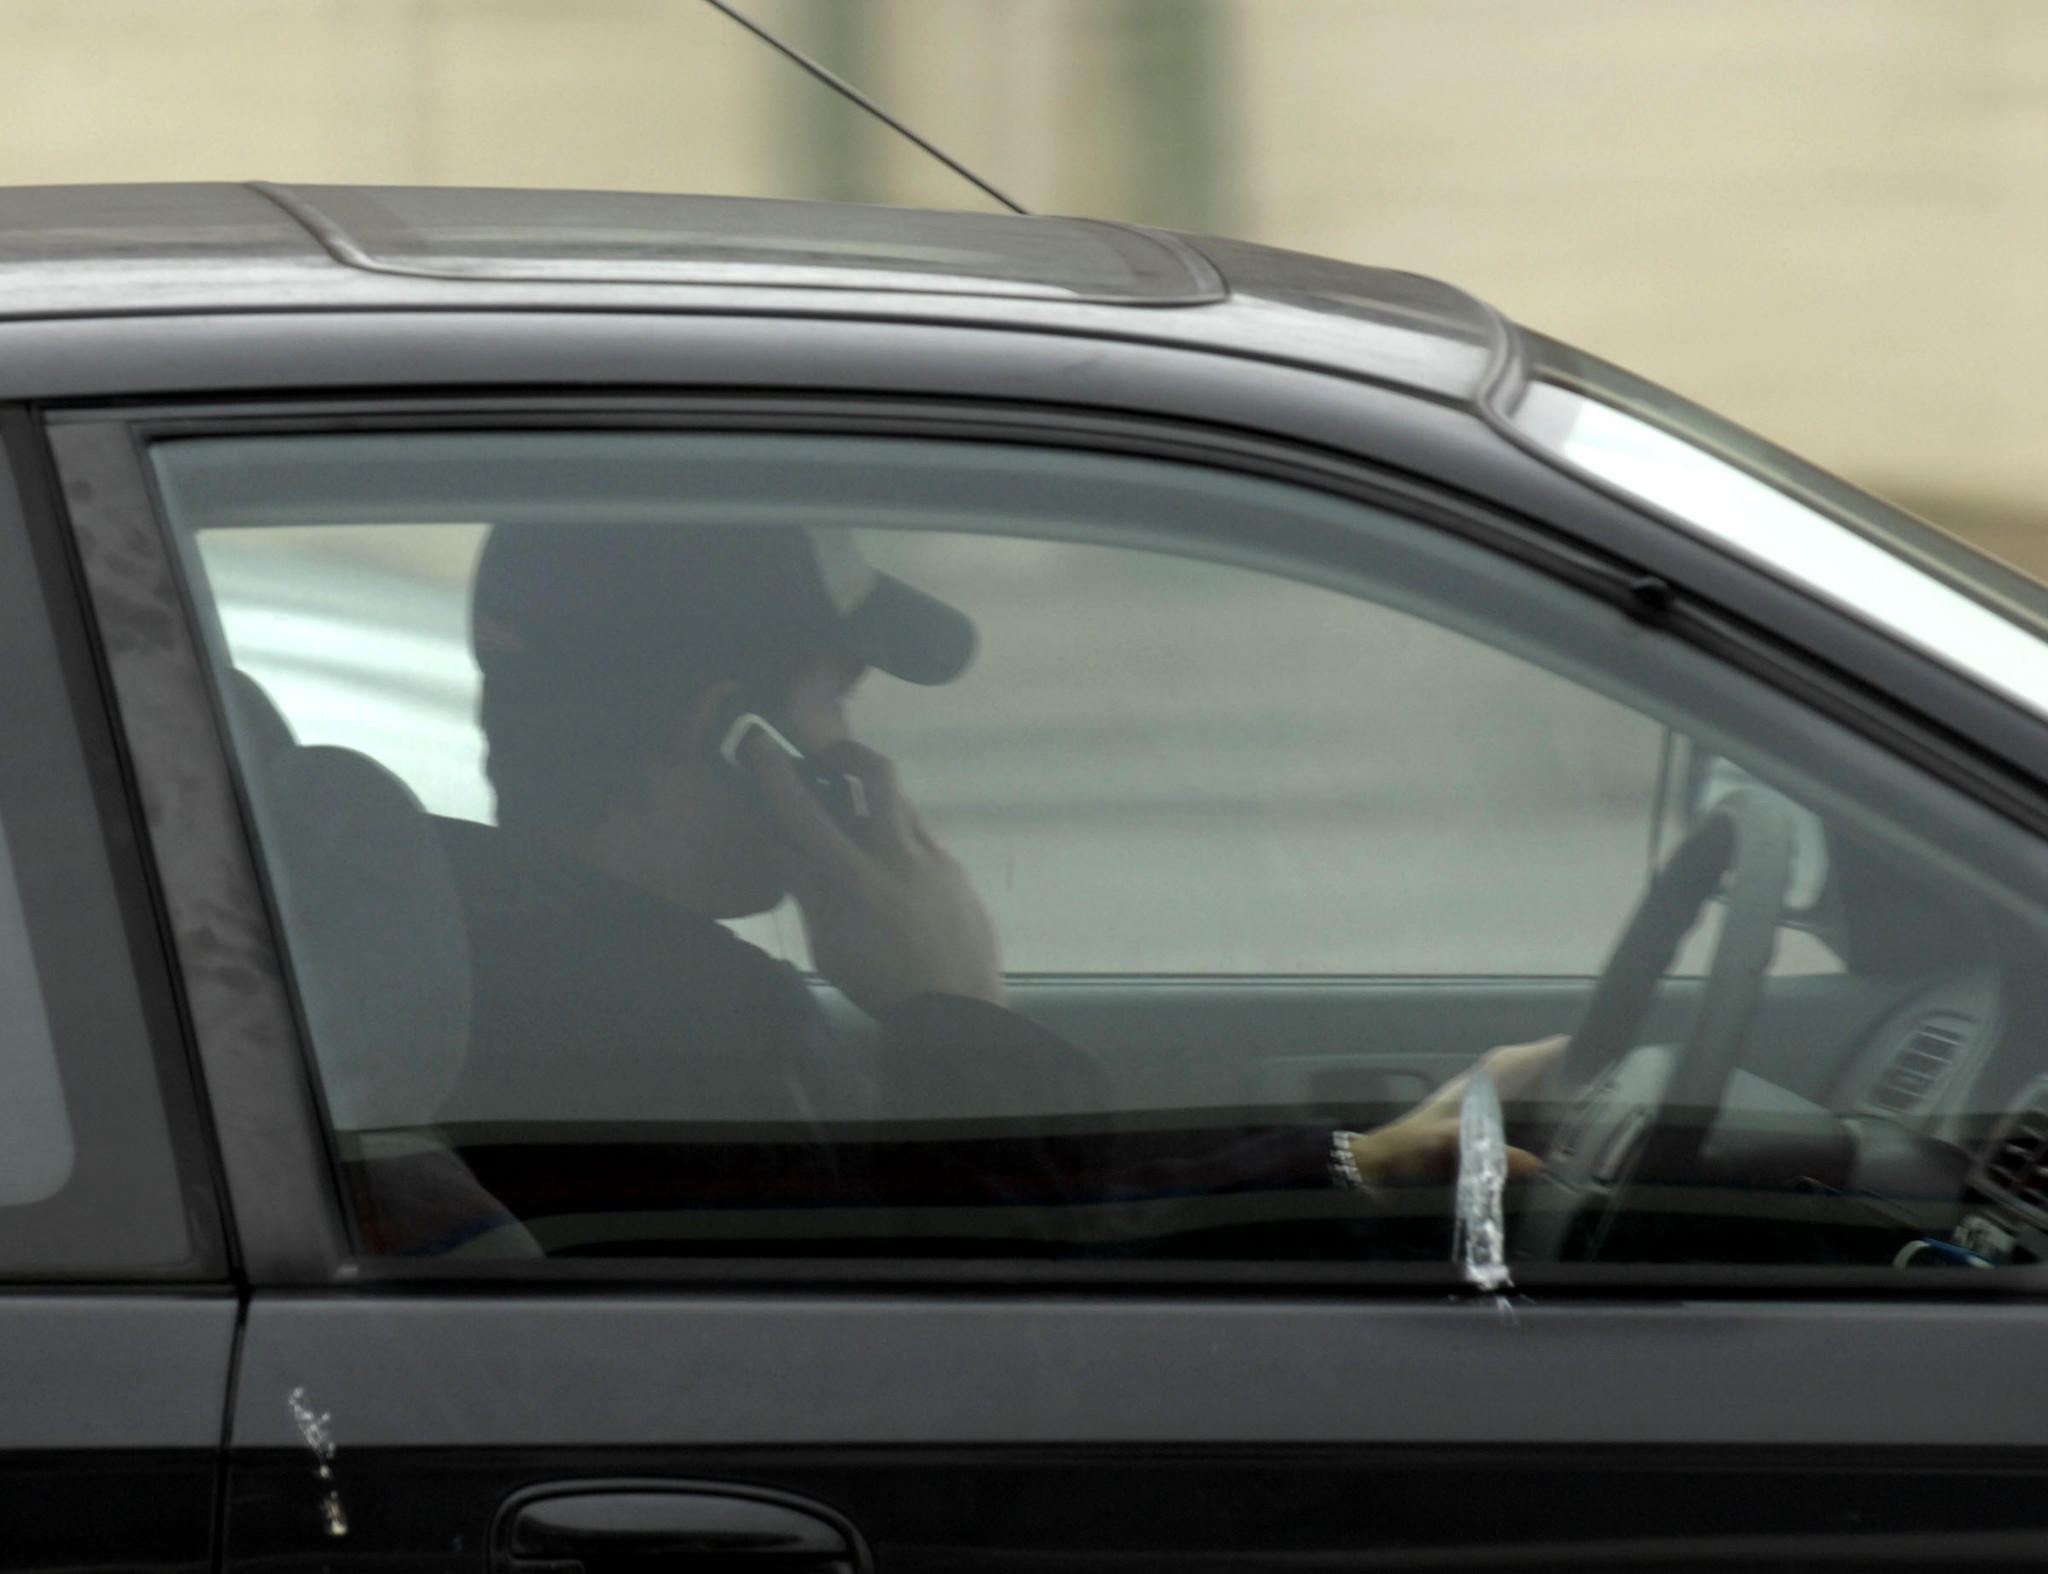 Drivers are already prohibited from using hand-held cell phones, but the new law lets police stop them for that offense alone.